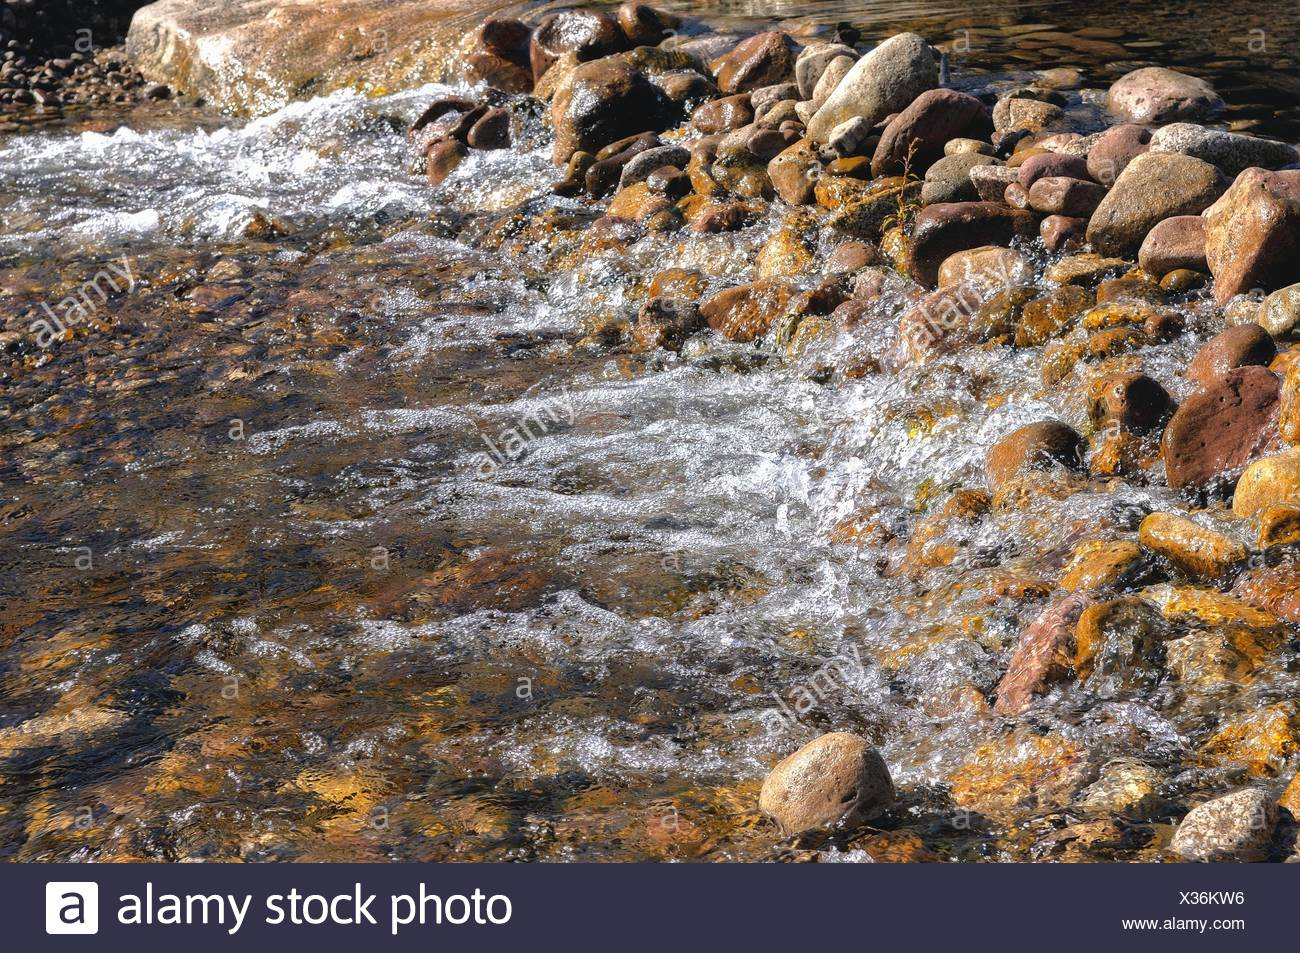 dammed water dam with stones Stock Photo